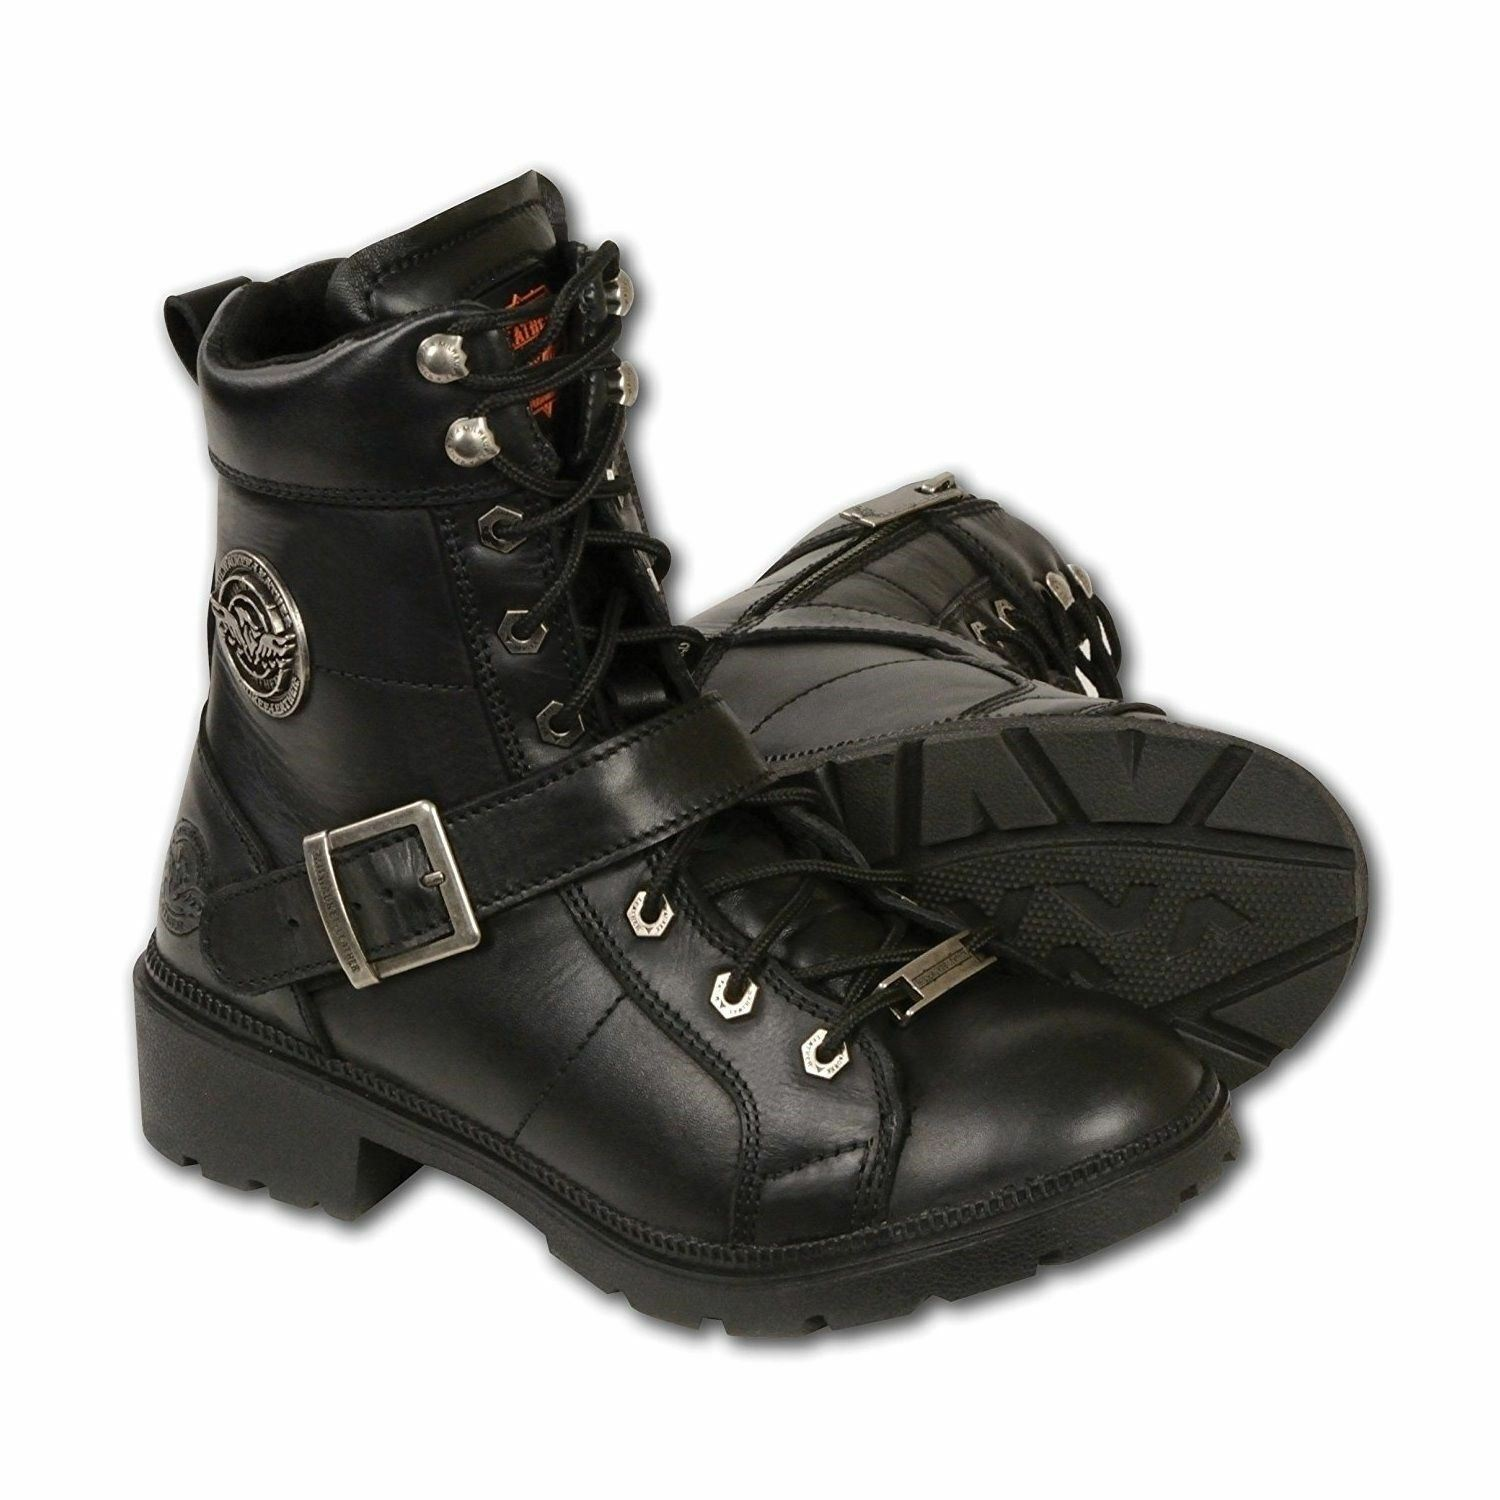 MILWAUKEE LEATHER LADIES LACE TO TOE BOOTS w/ PLAIN TOE & ZIPPER - USABR